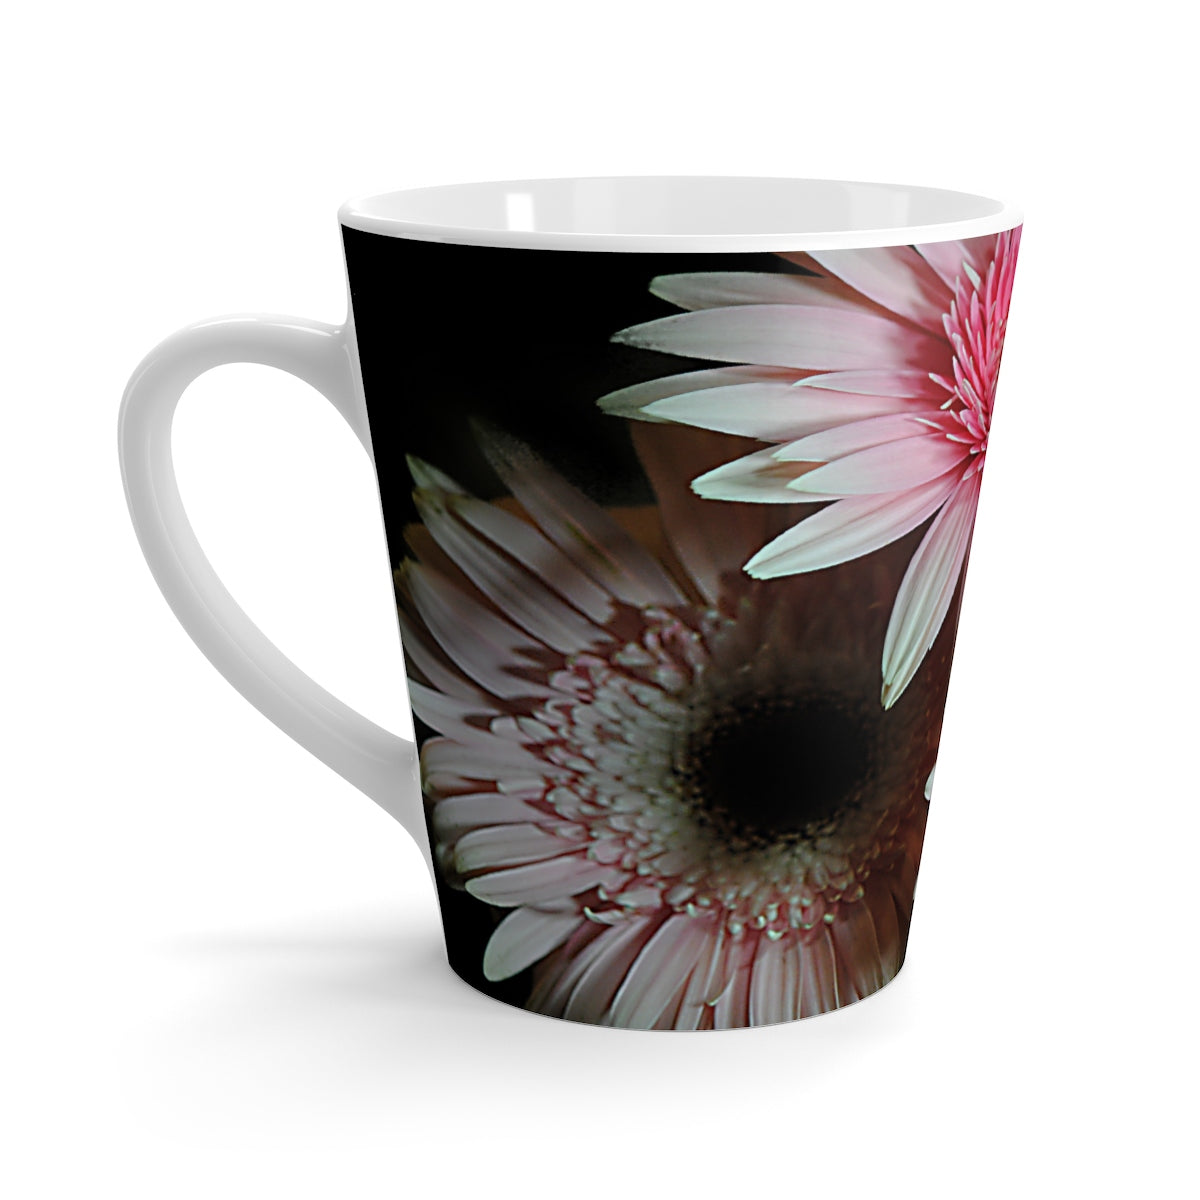 Three Pastel Pink Daisies Latte mug